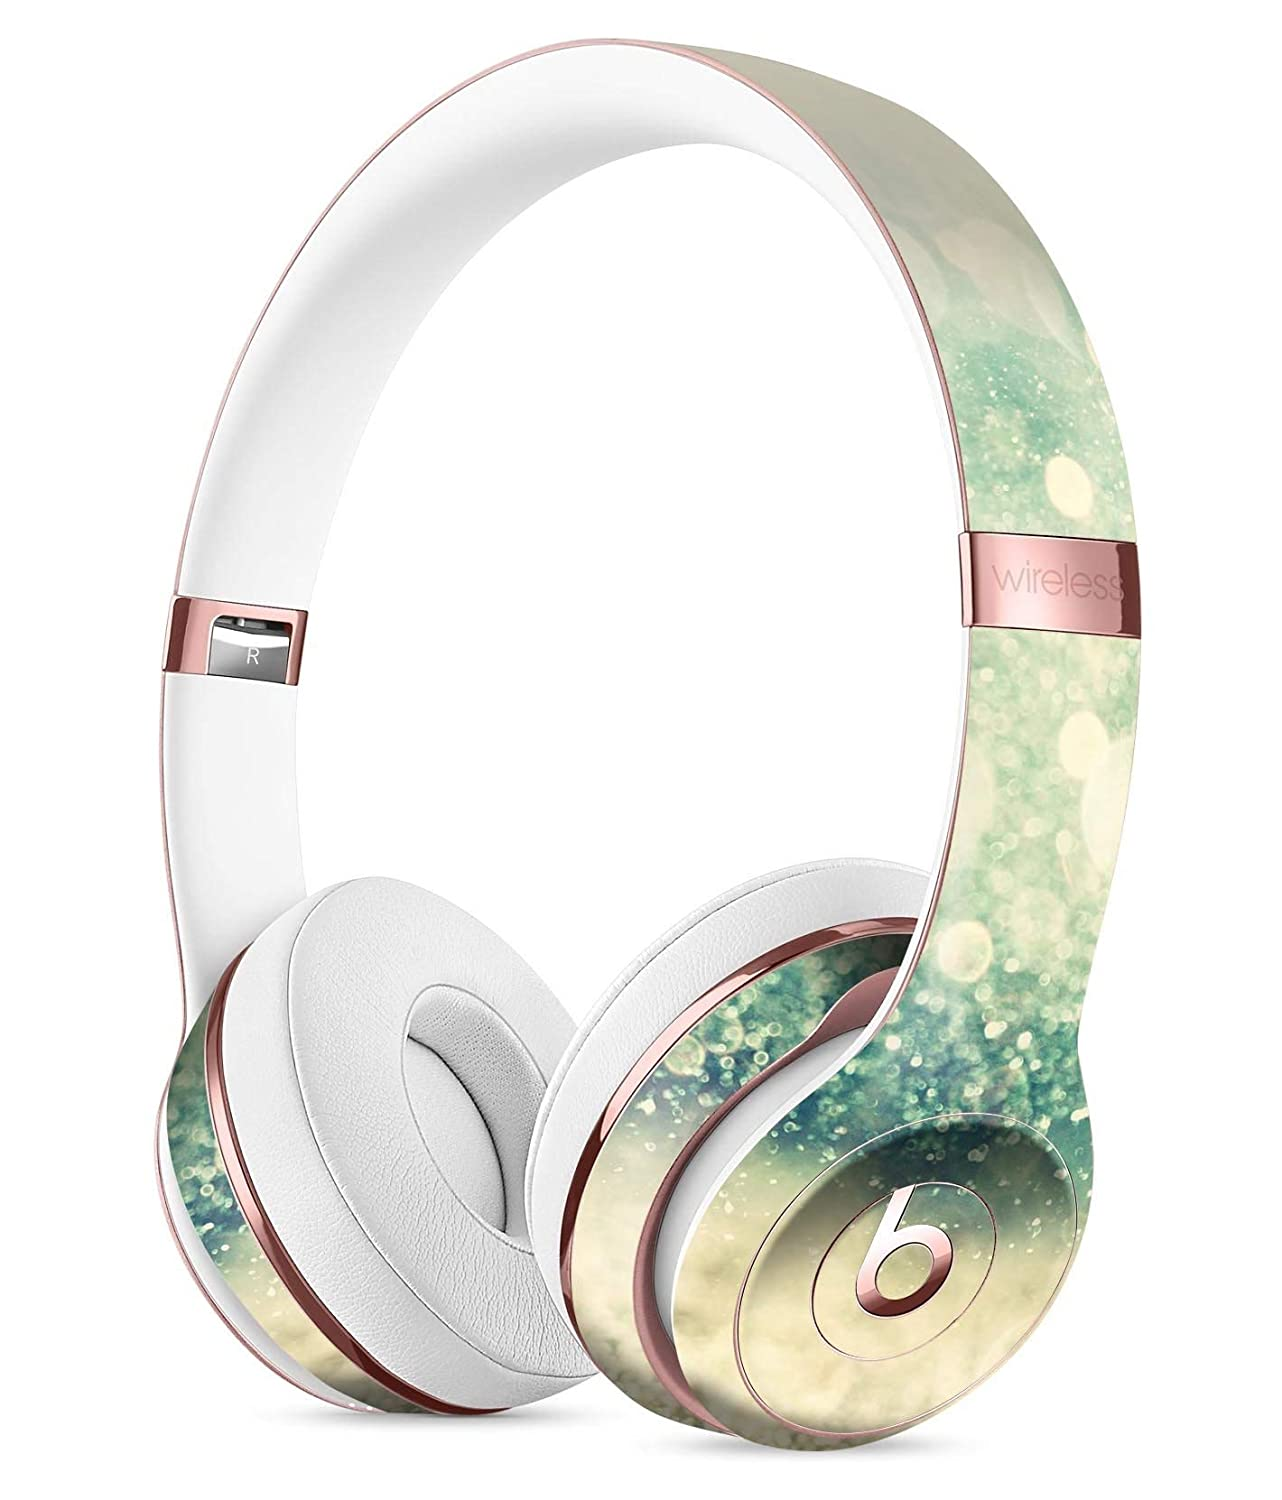 Teal and Gold Unfocused Orbsのライトdesignskinz全面スキンキットfor the Beats by Dre Solo 3ワイヤレスヘッドフォン/超薄型/マットFinished /保護スキンラップ   B01N3UP8V6